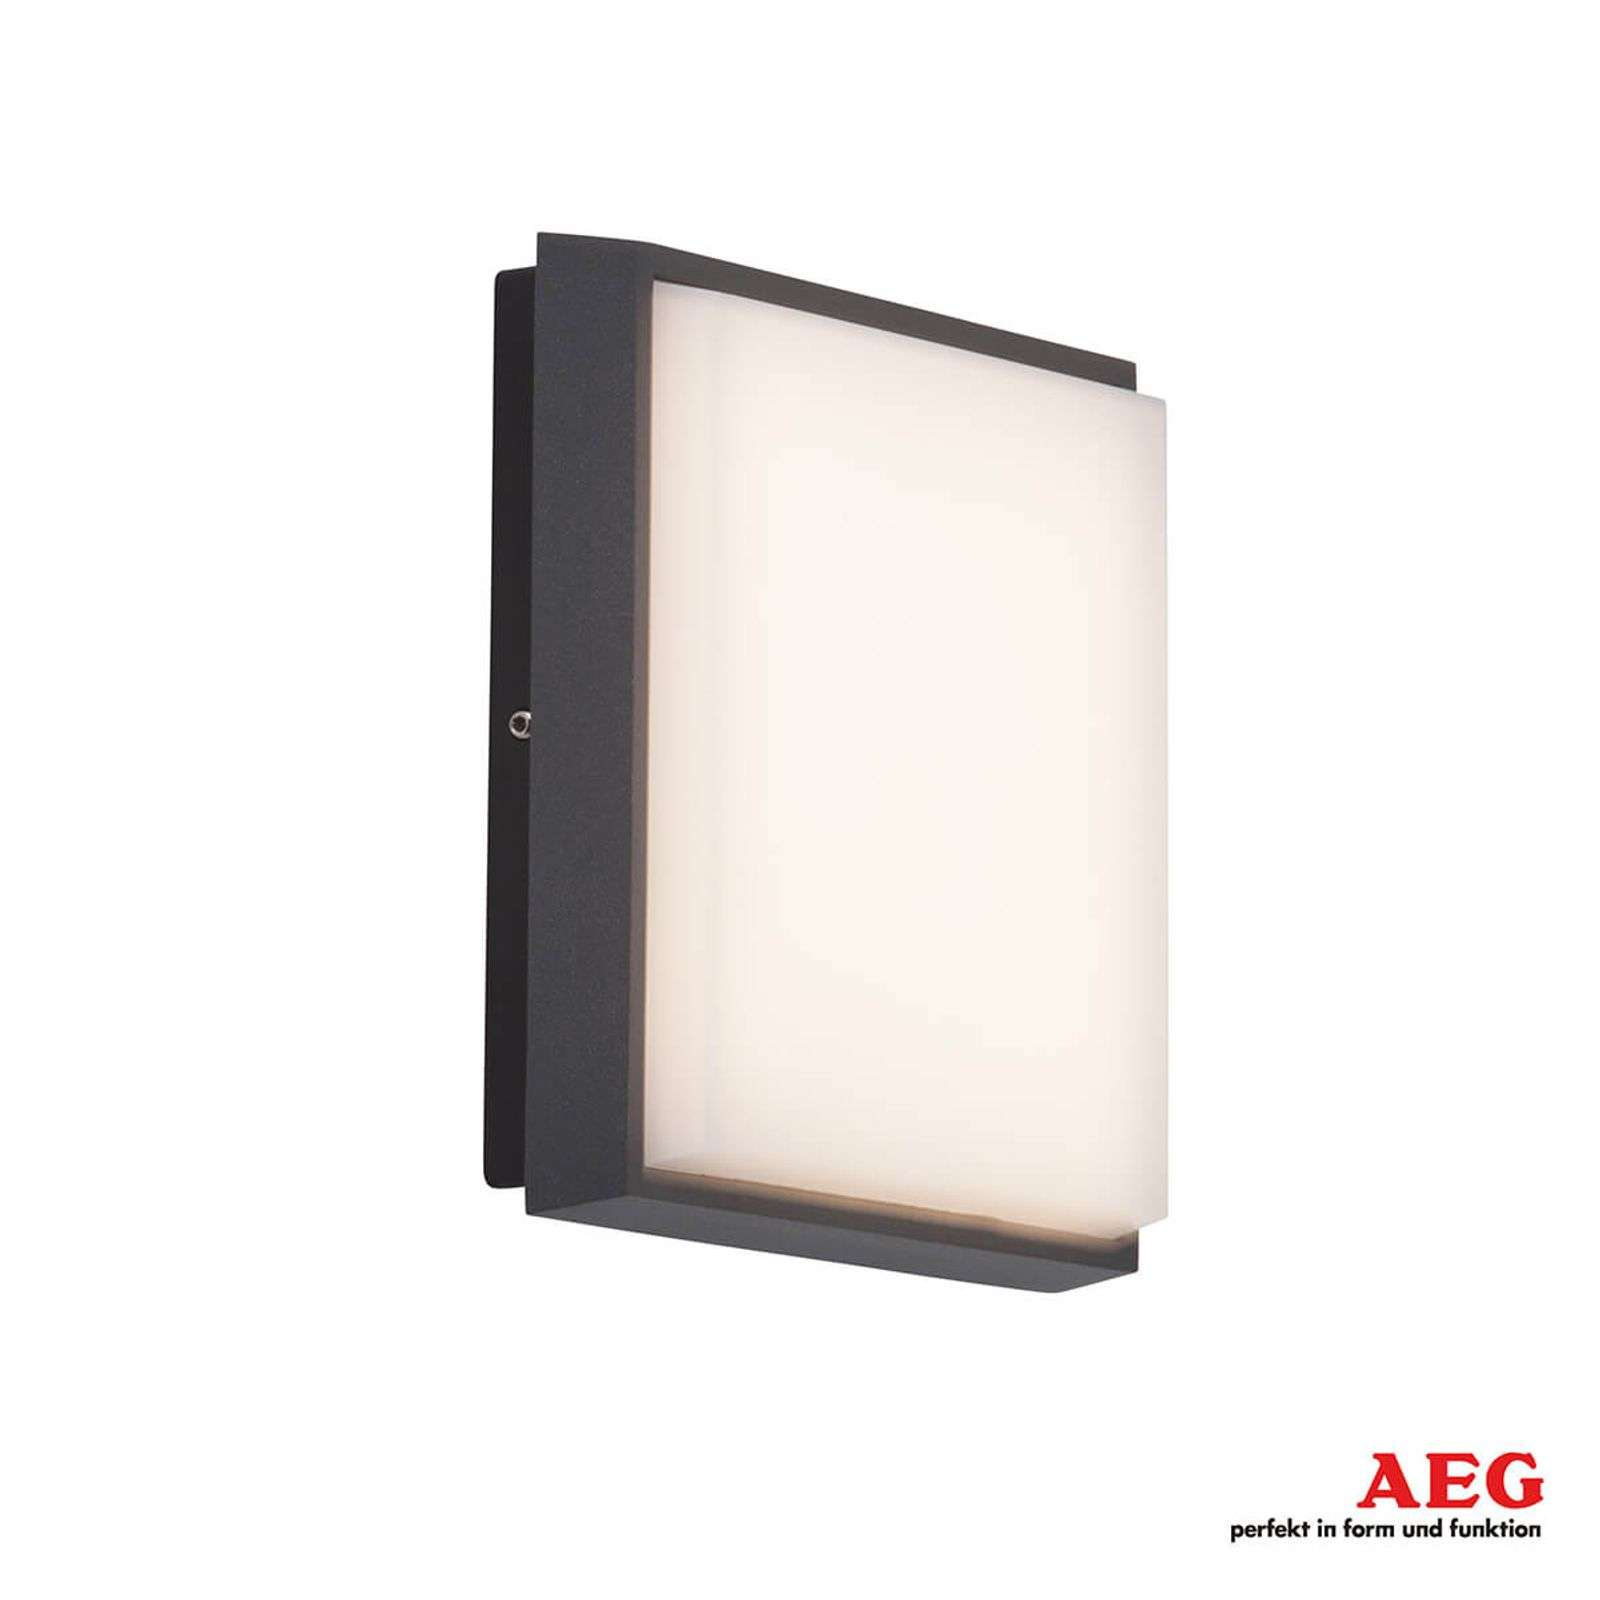 Aplique LED para exterior Letan Square angular 9 W